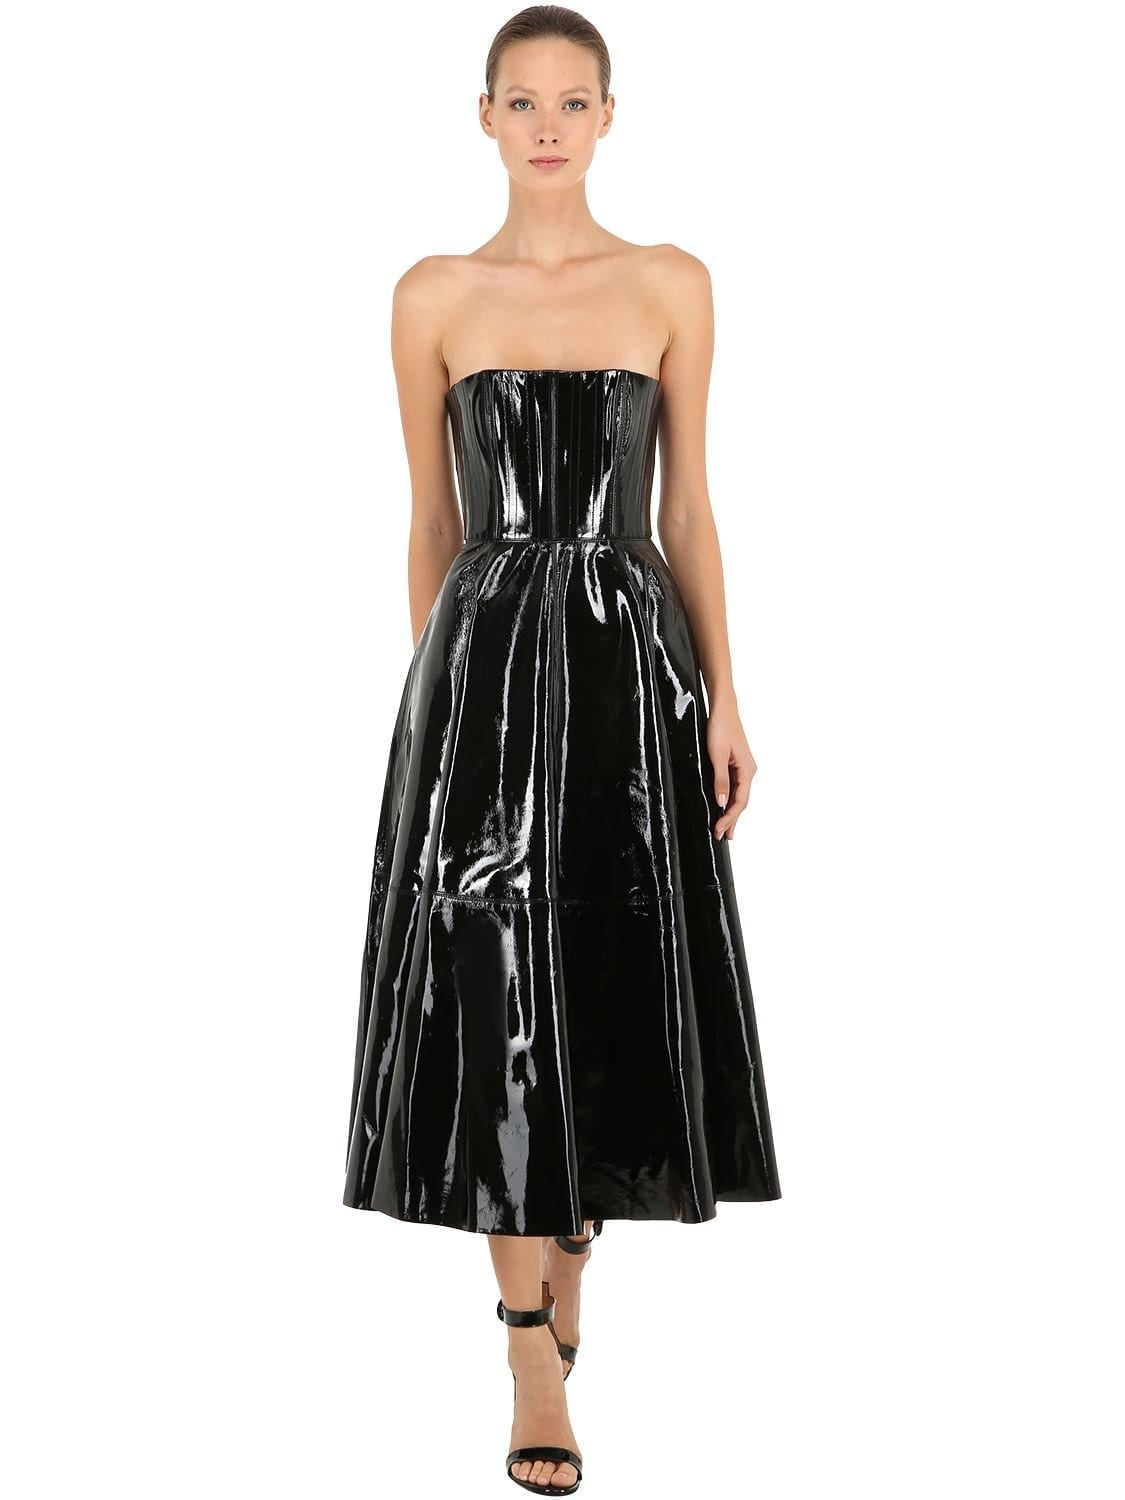 ALEX PERRY Patent Leather Bustier Black Dress